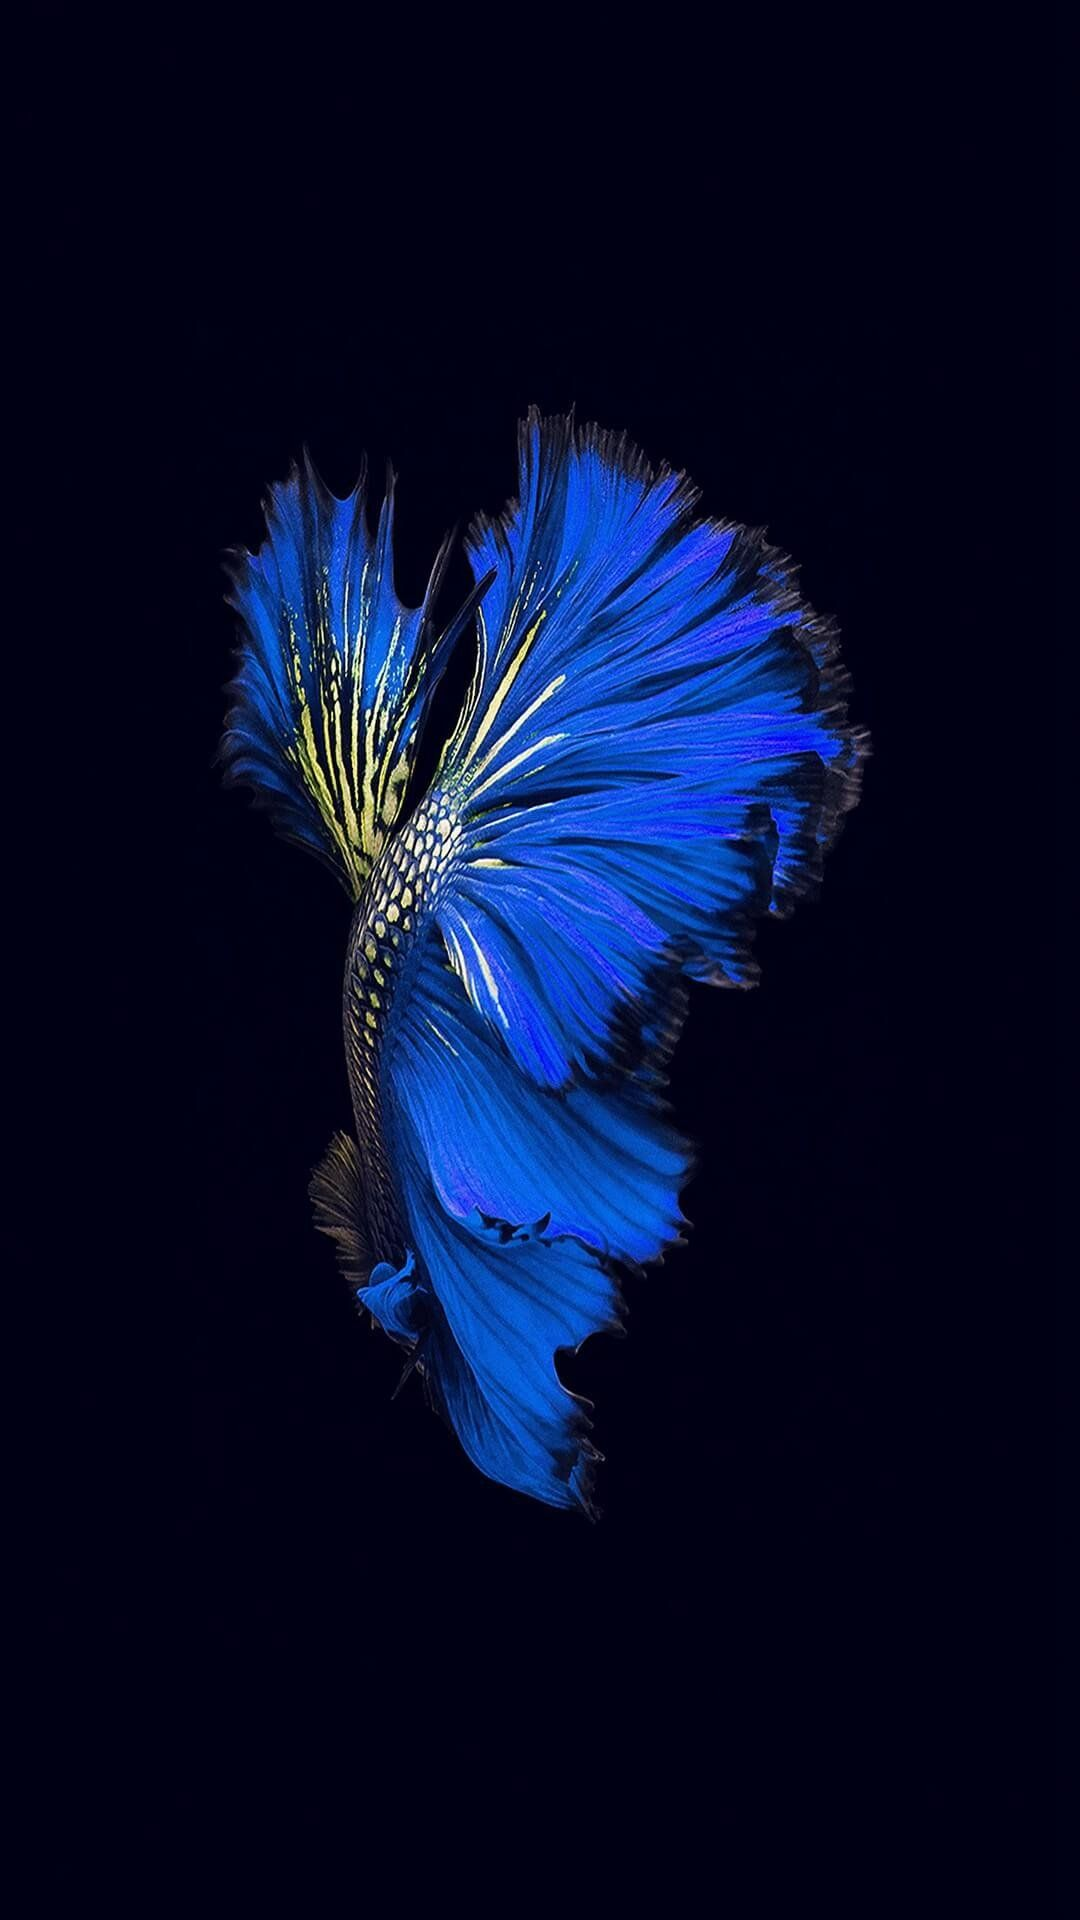 best ios 10 wallpapers hd | bettas on black | pinterest | ios 10